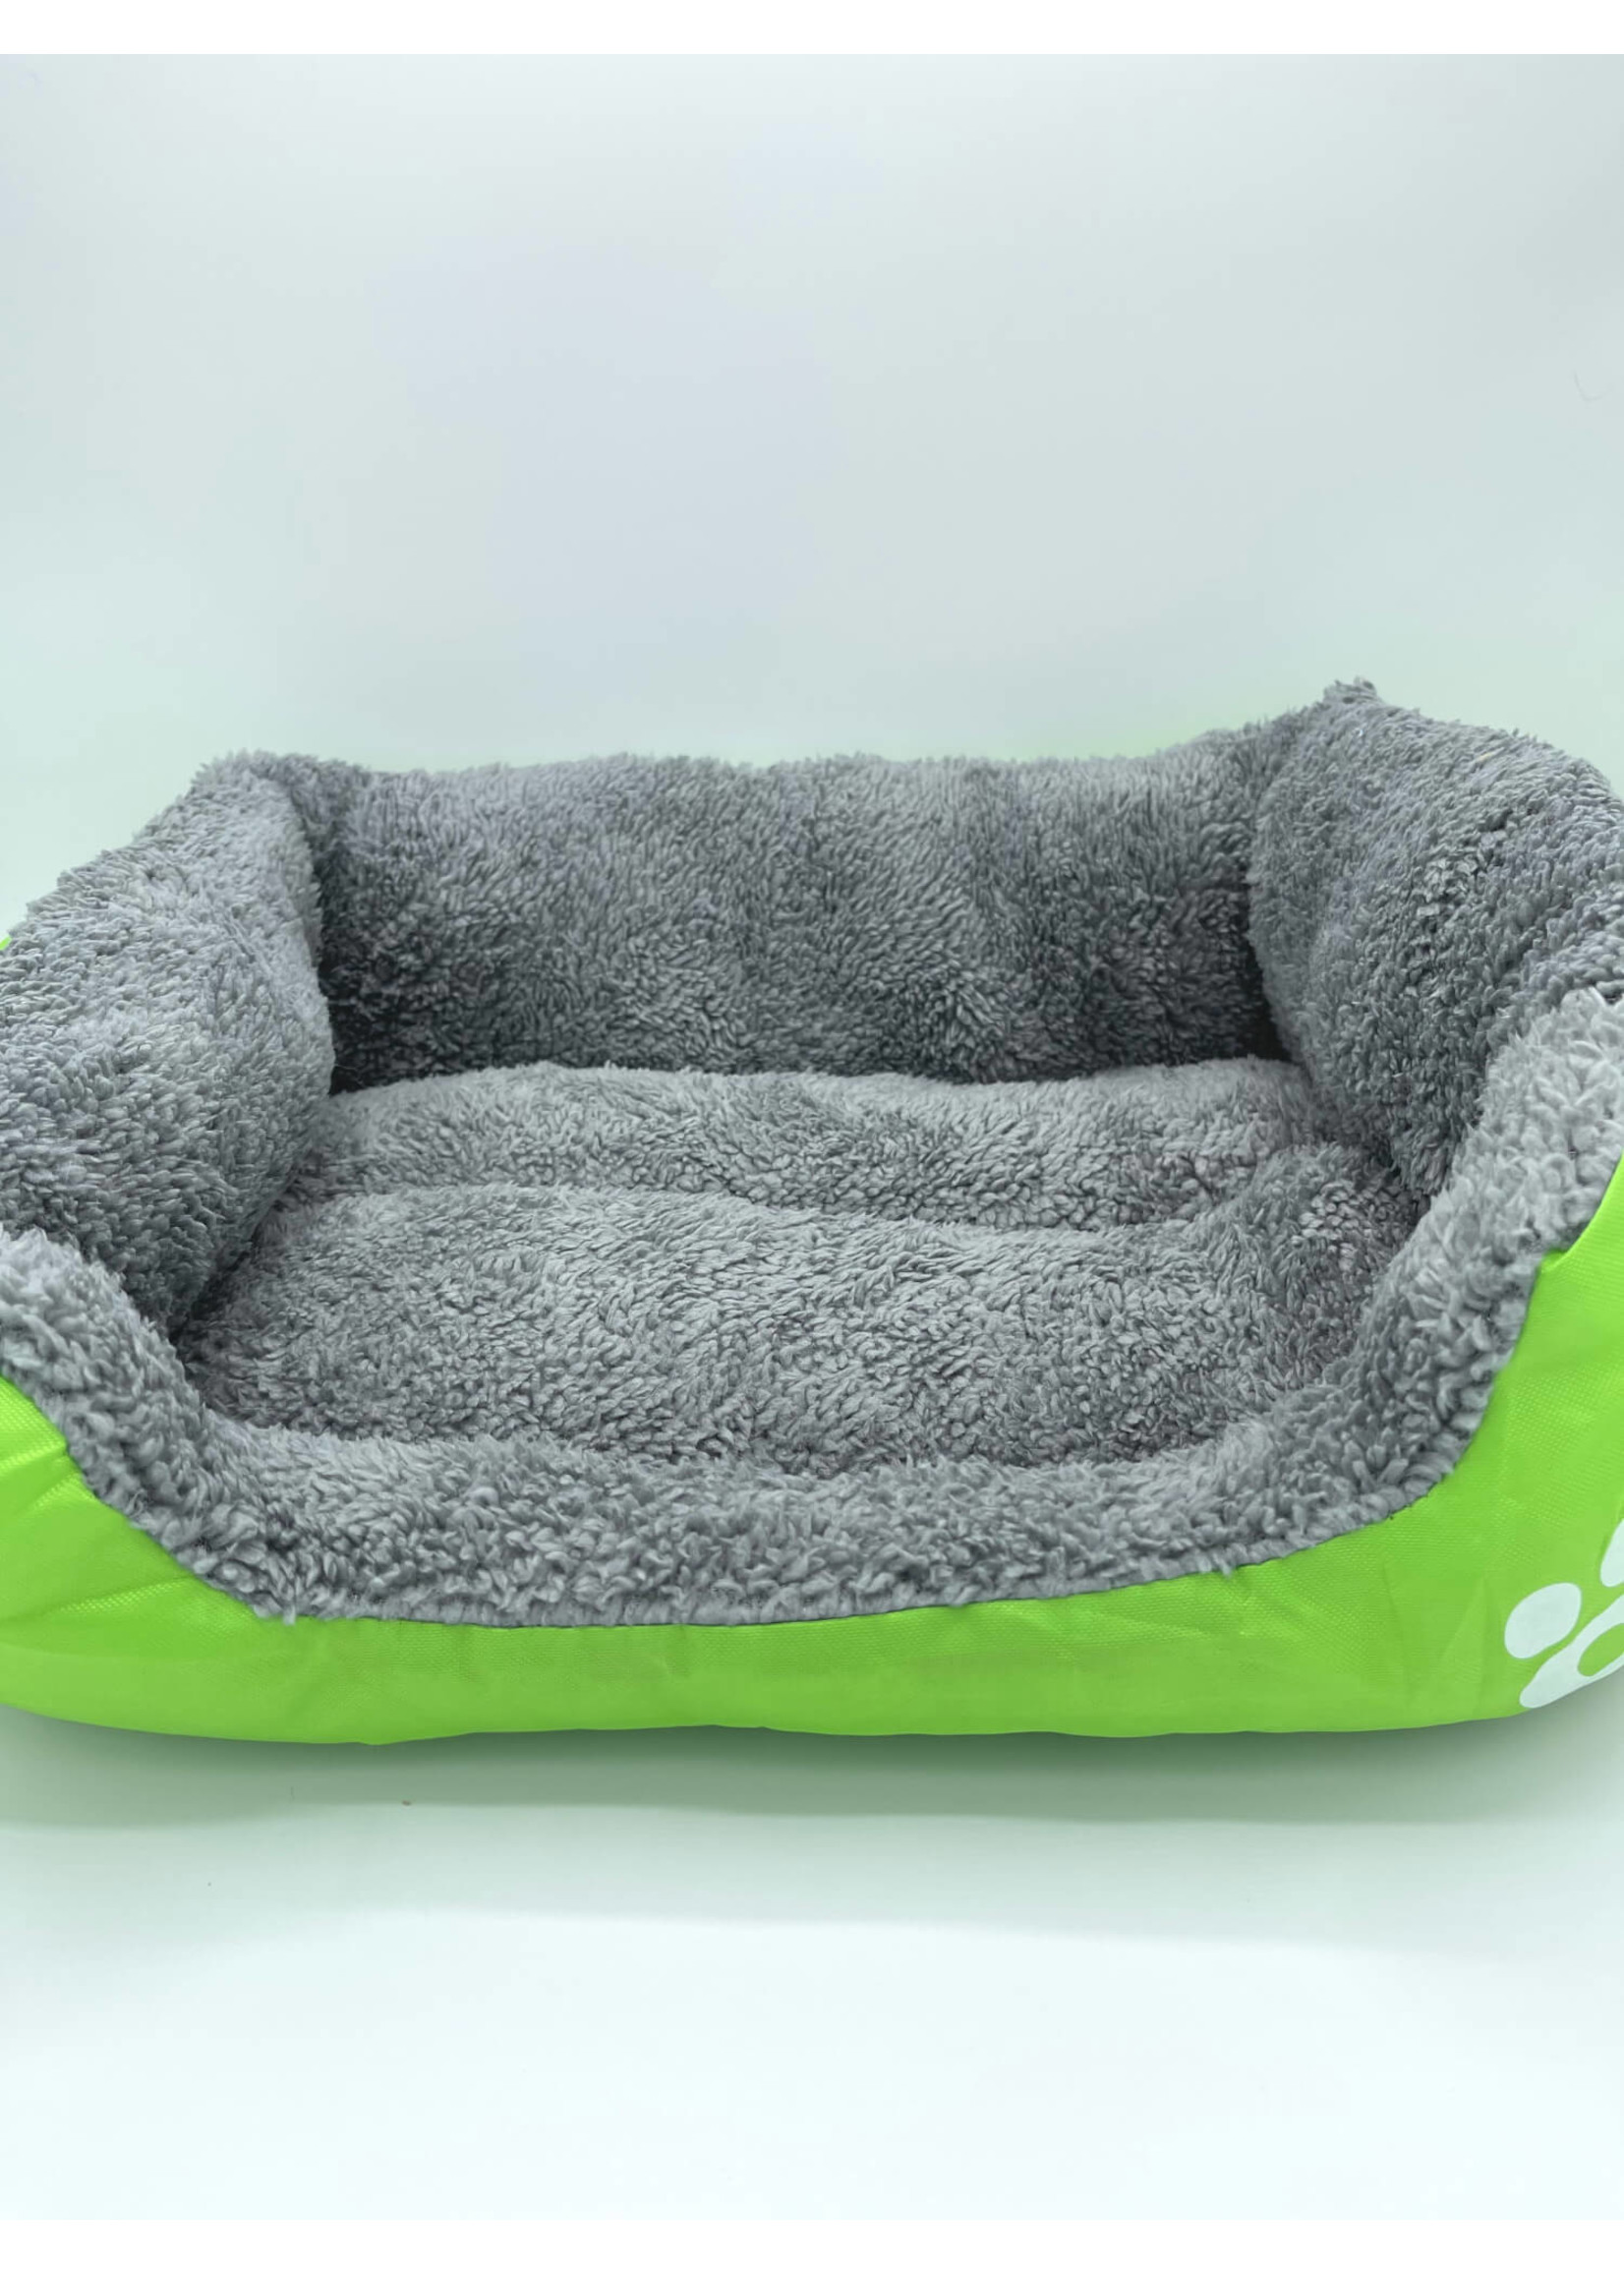 Soft Luxury Pet Bed Dog Bed Cat Bed